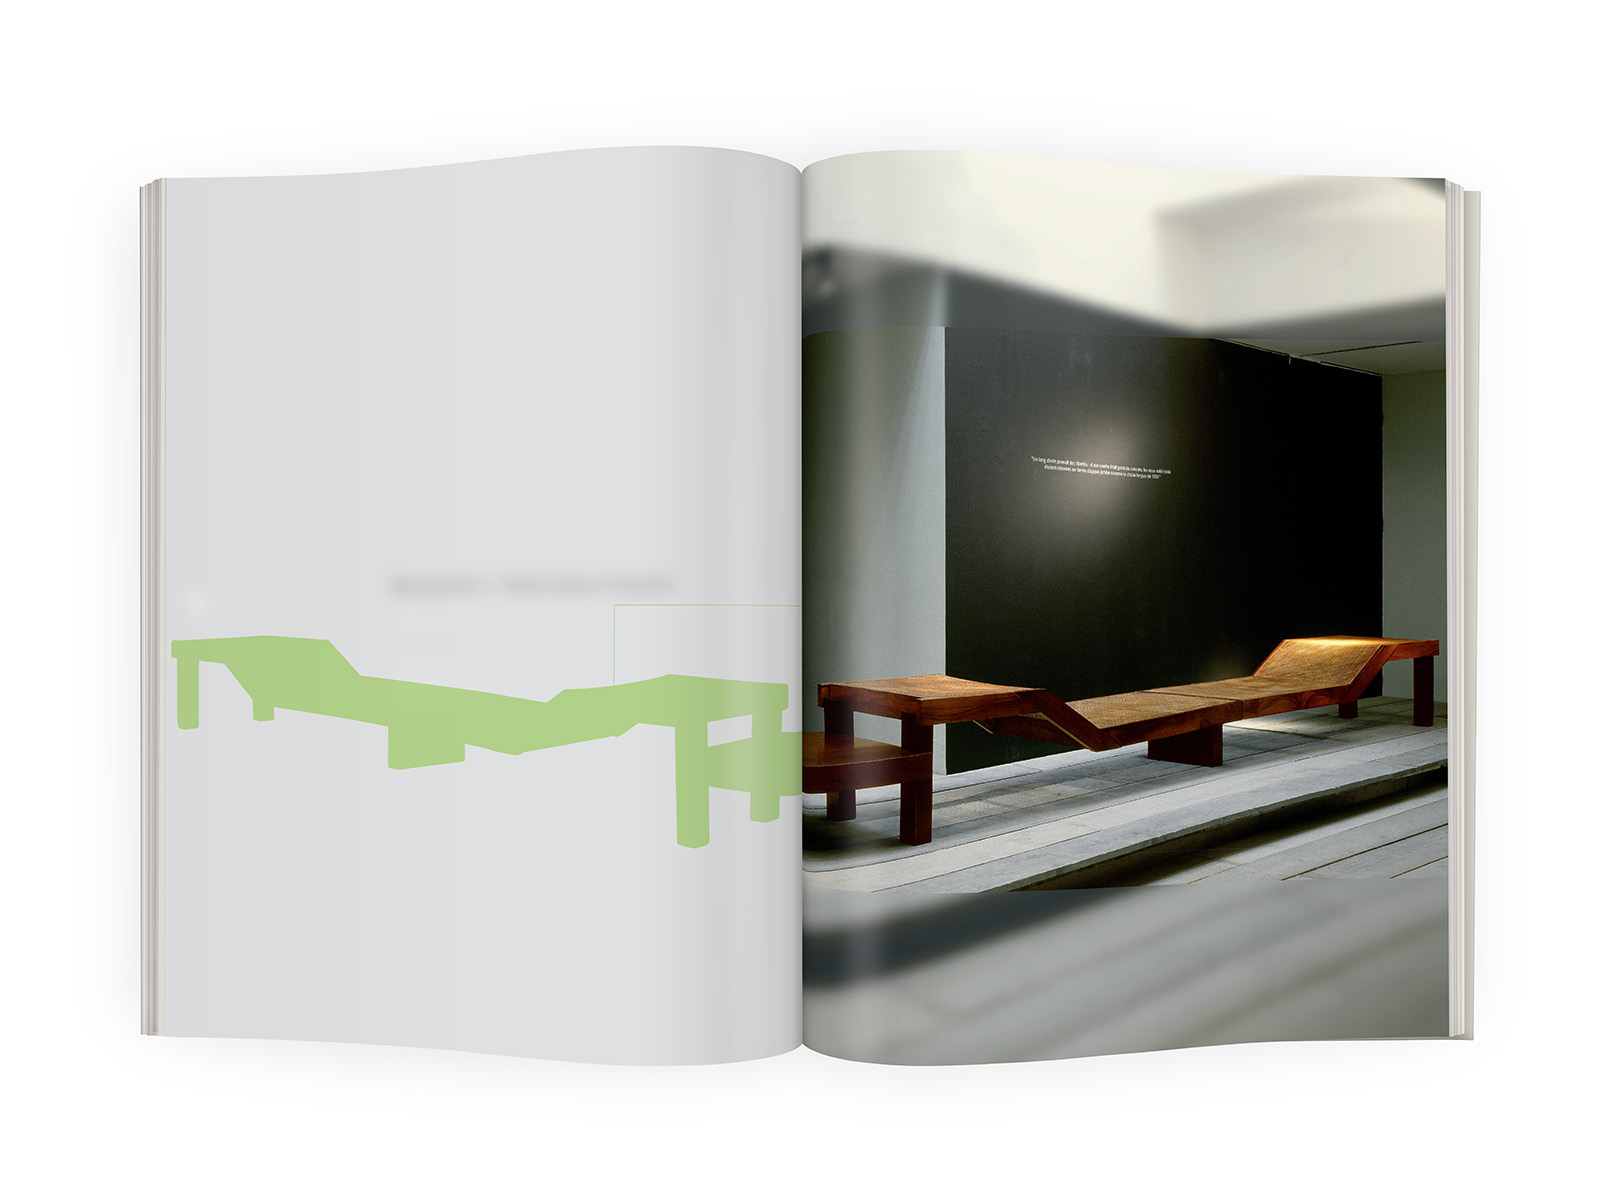 galerieDOWNTOWN - Catalogue Charlotte Perriand Bresil p28-29